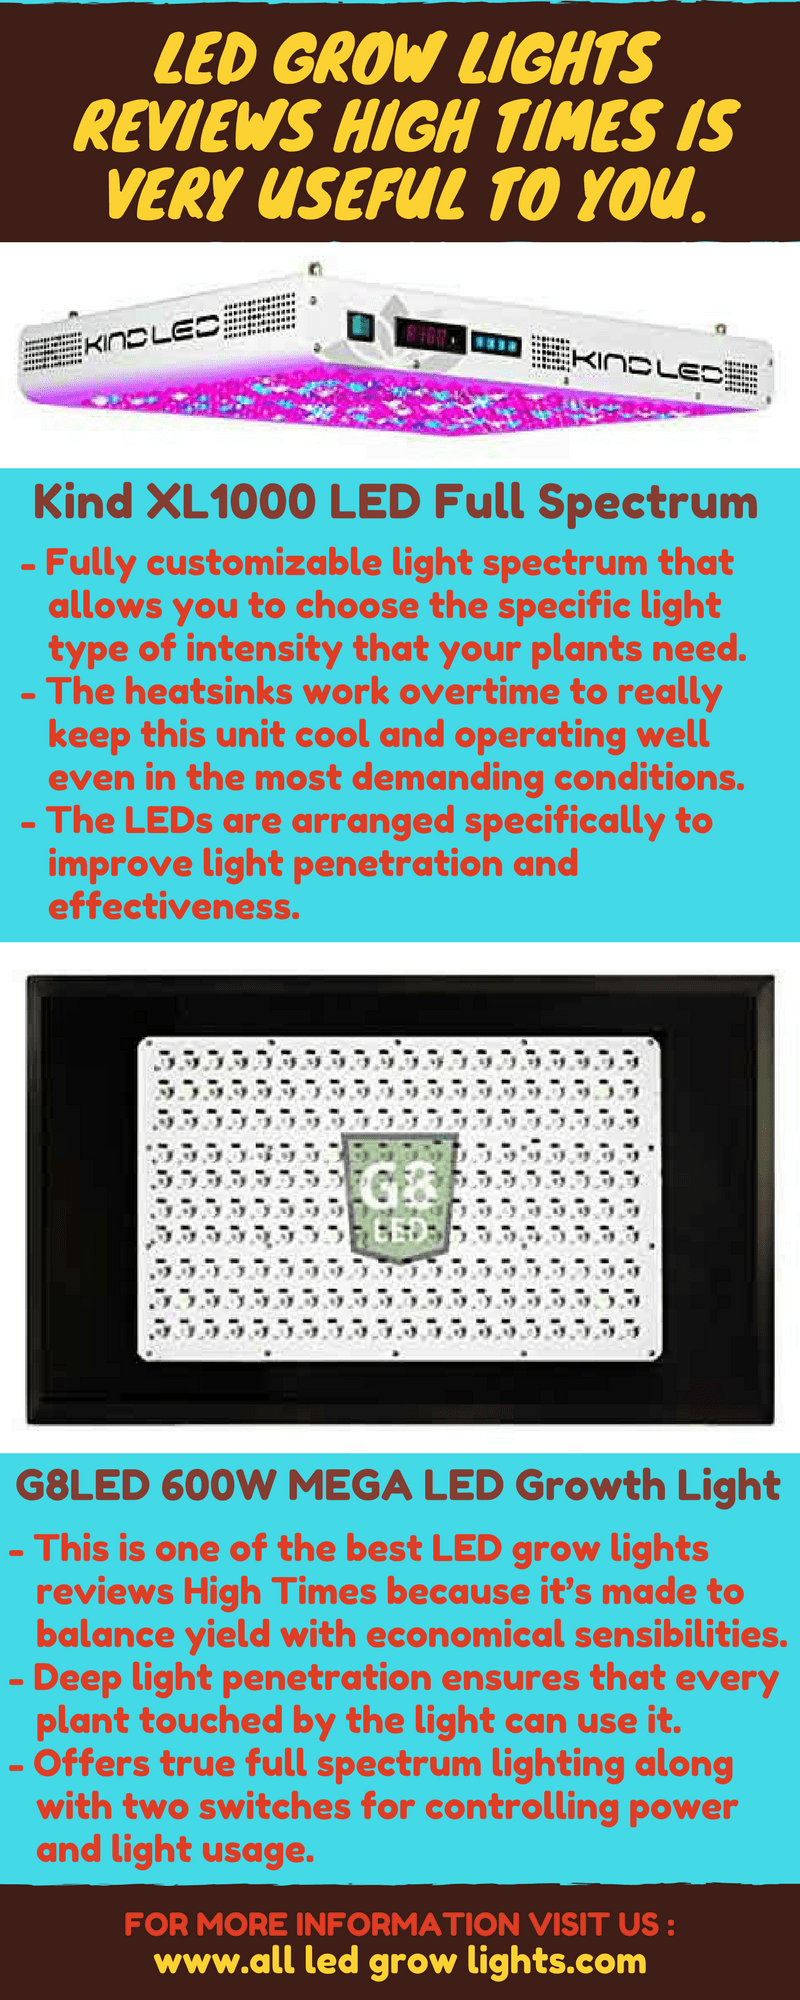 led grow light review high times infographic